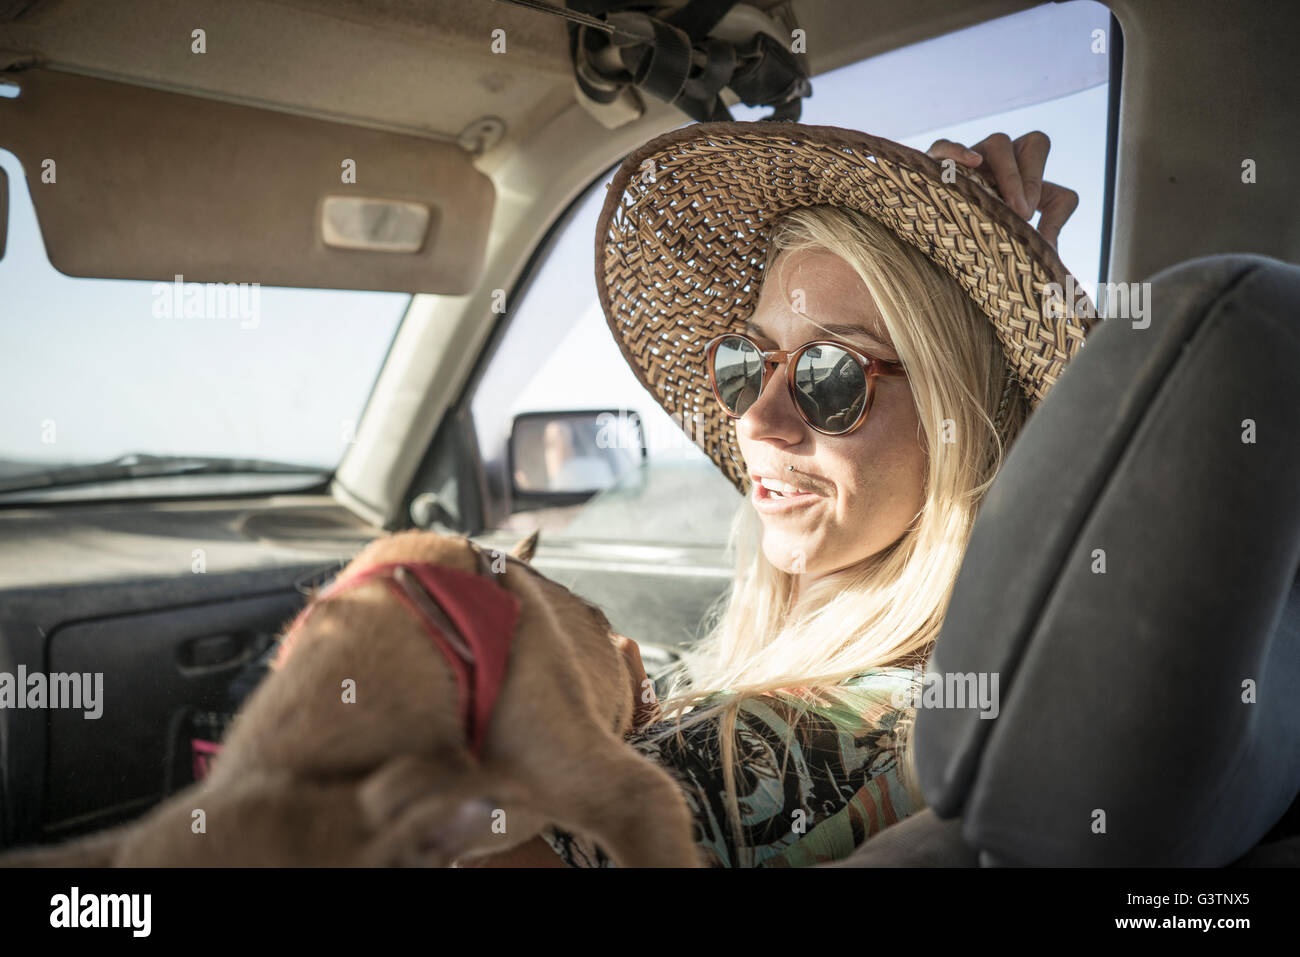 A female surfer sitting in a car with a dog at Corralejo in Fuerteventura. - Stock Image